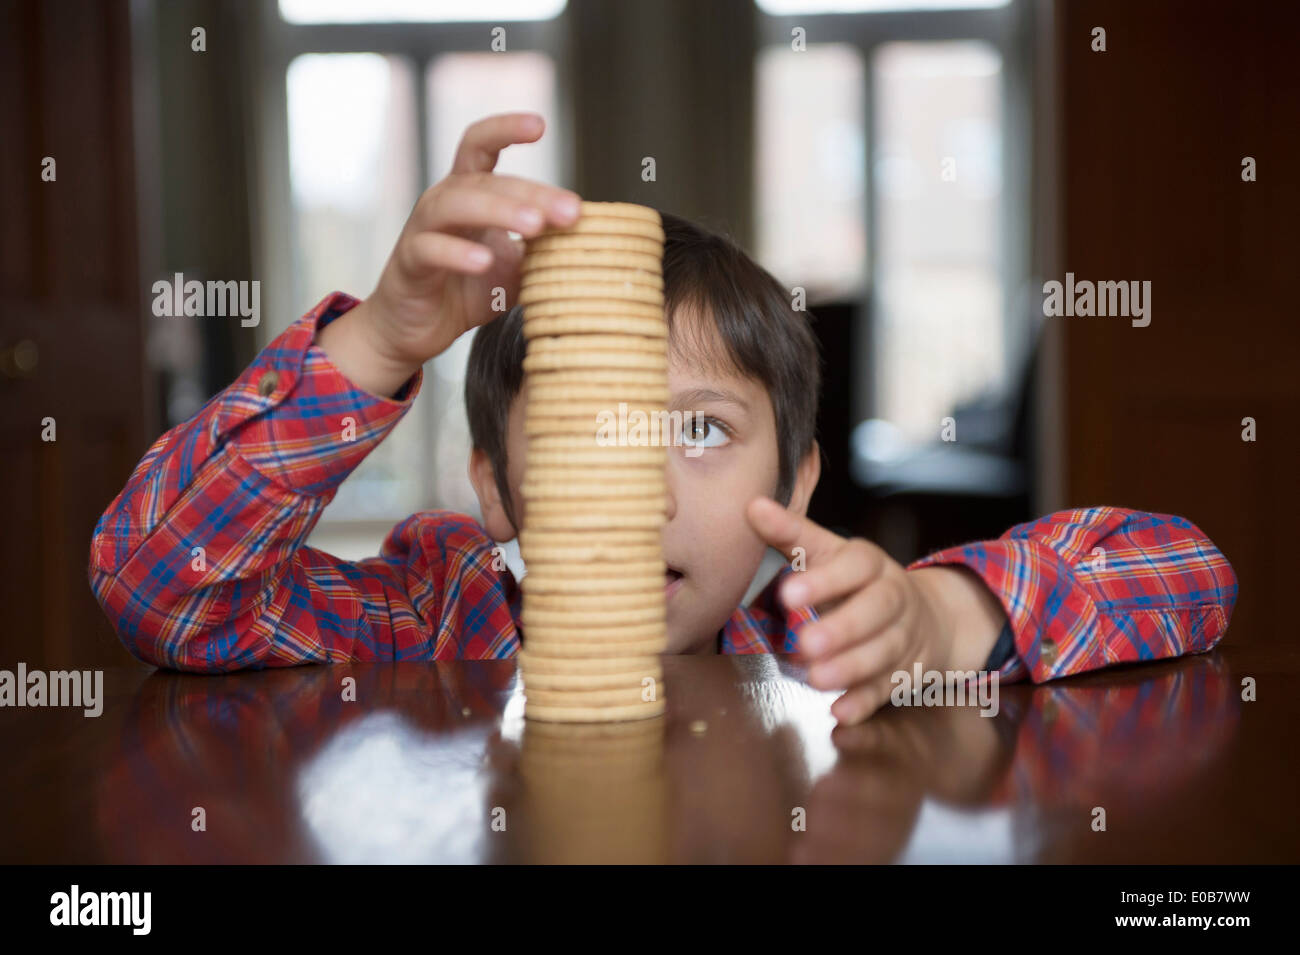 Boy stacking up biscuits Photo Stock